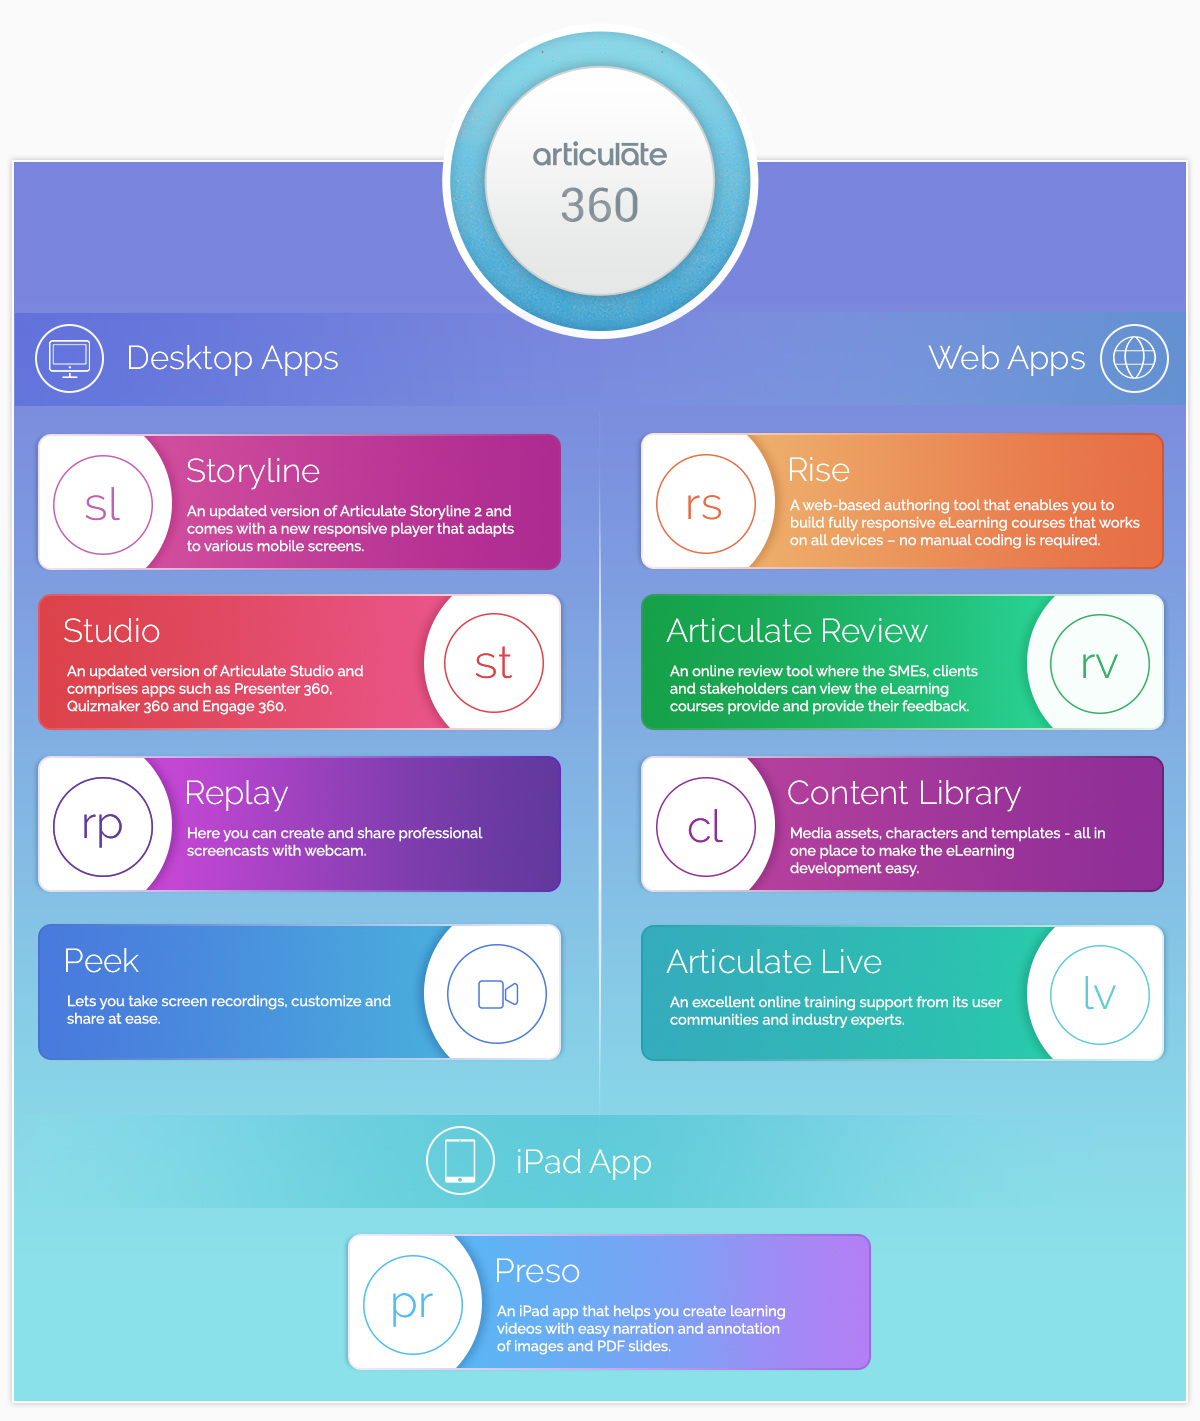 files/images/Articulate-360-1.jpg